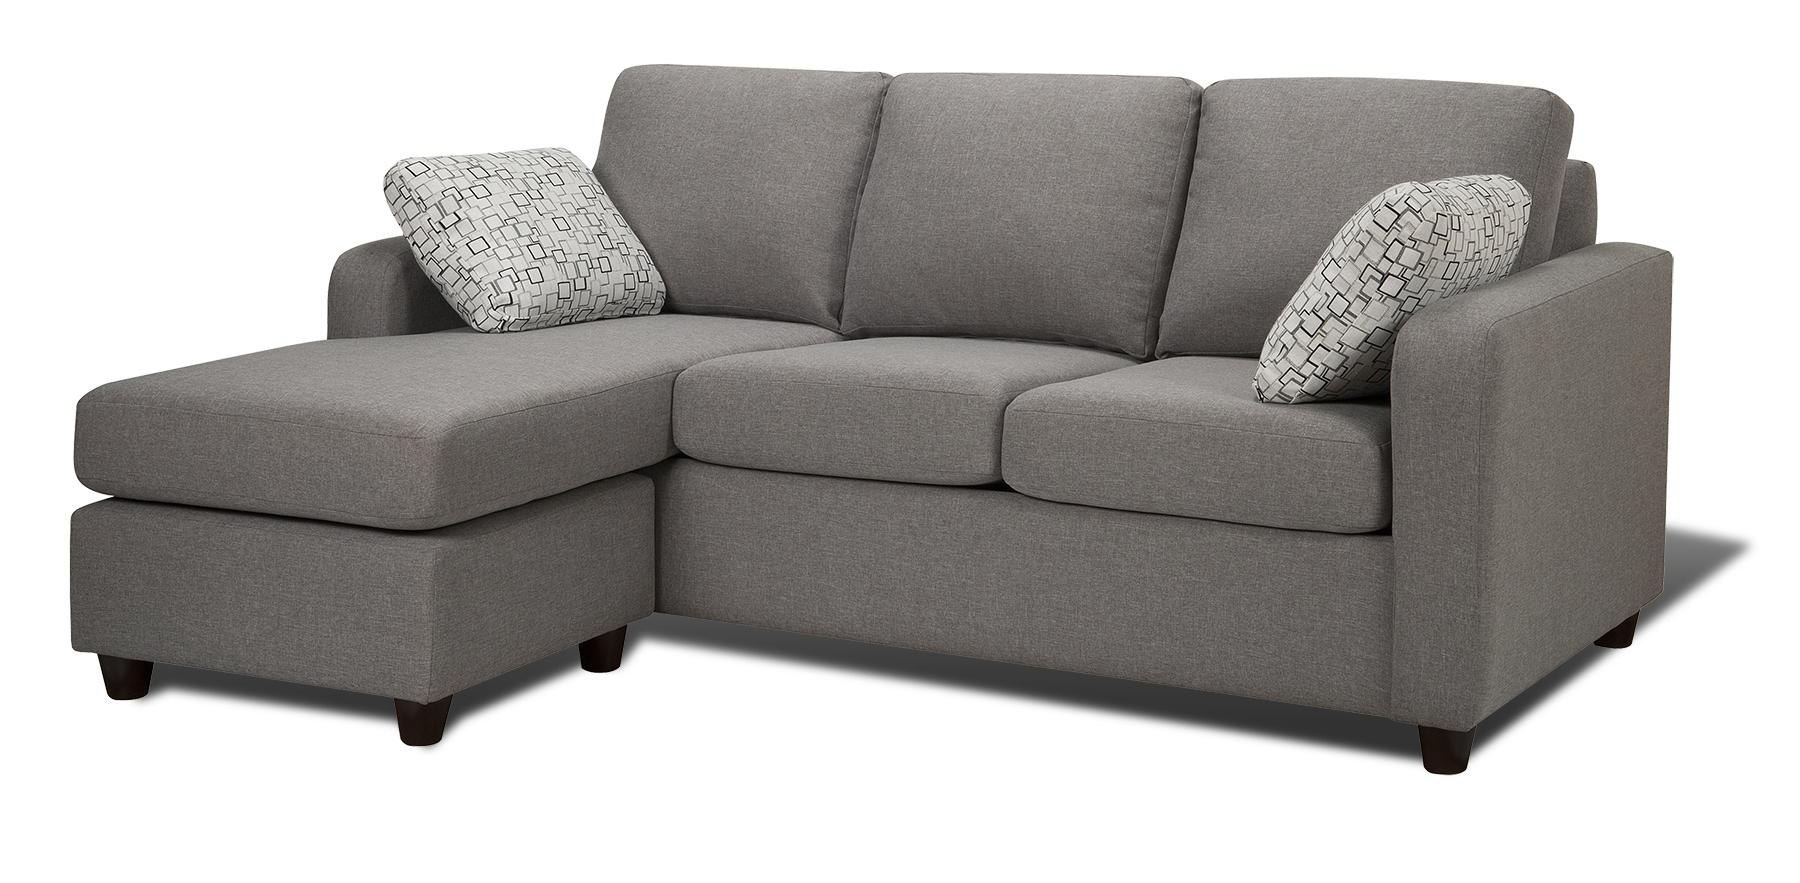 Hide A Bed | Simmons Pertaining To Simmons Sofa Beds (Image 7 of 20)